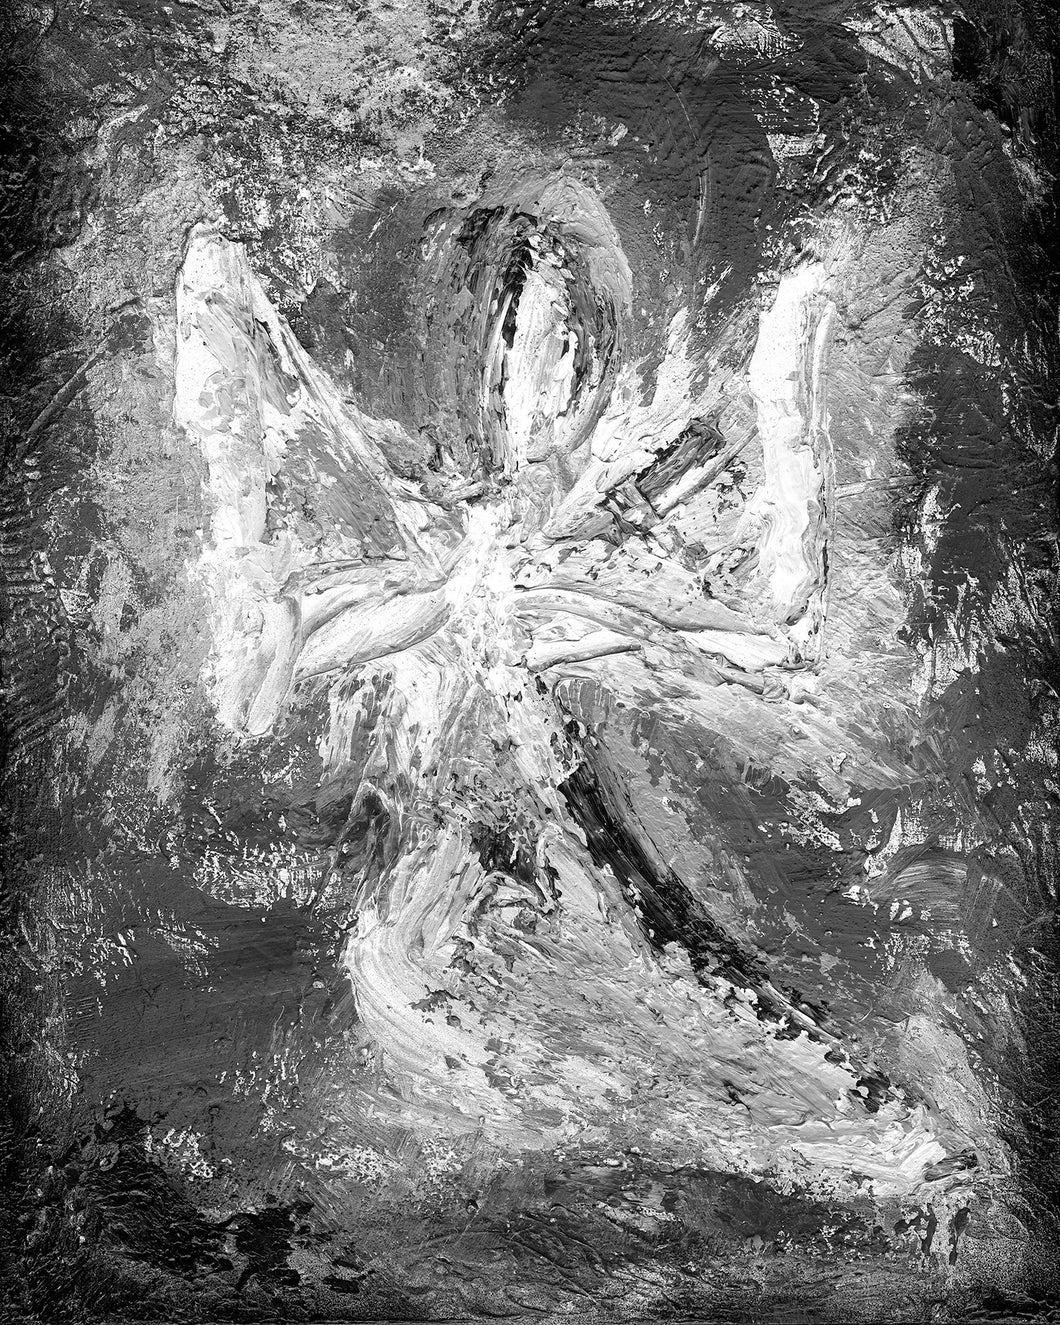 Monochrome Angel Wall Art | Contemporary Modern Angel Art | Abstract Angel | Fine Art Canvas | Black and White Angel Art | Inspirational